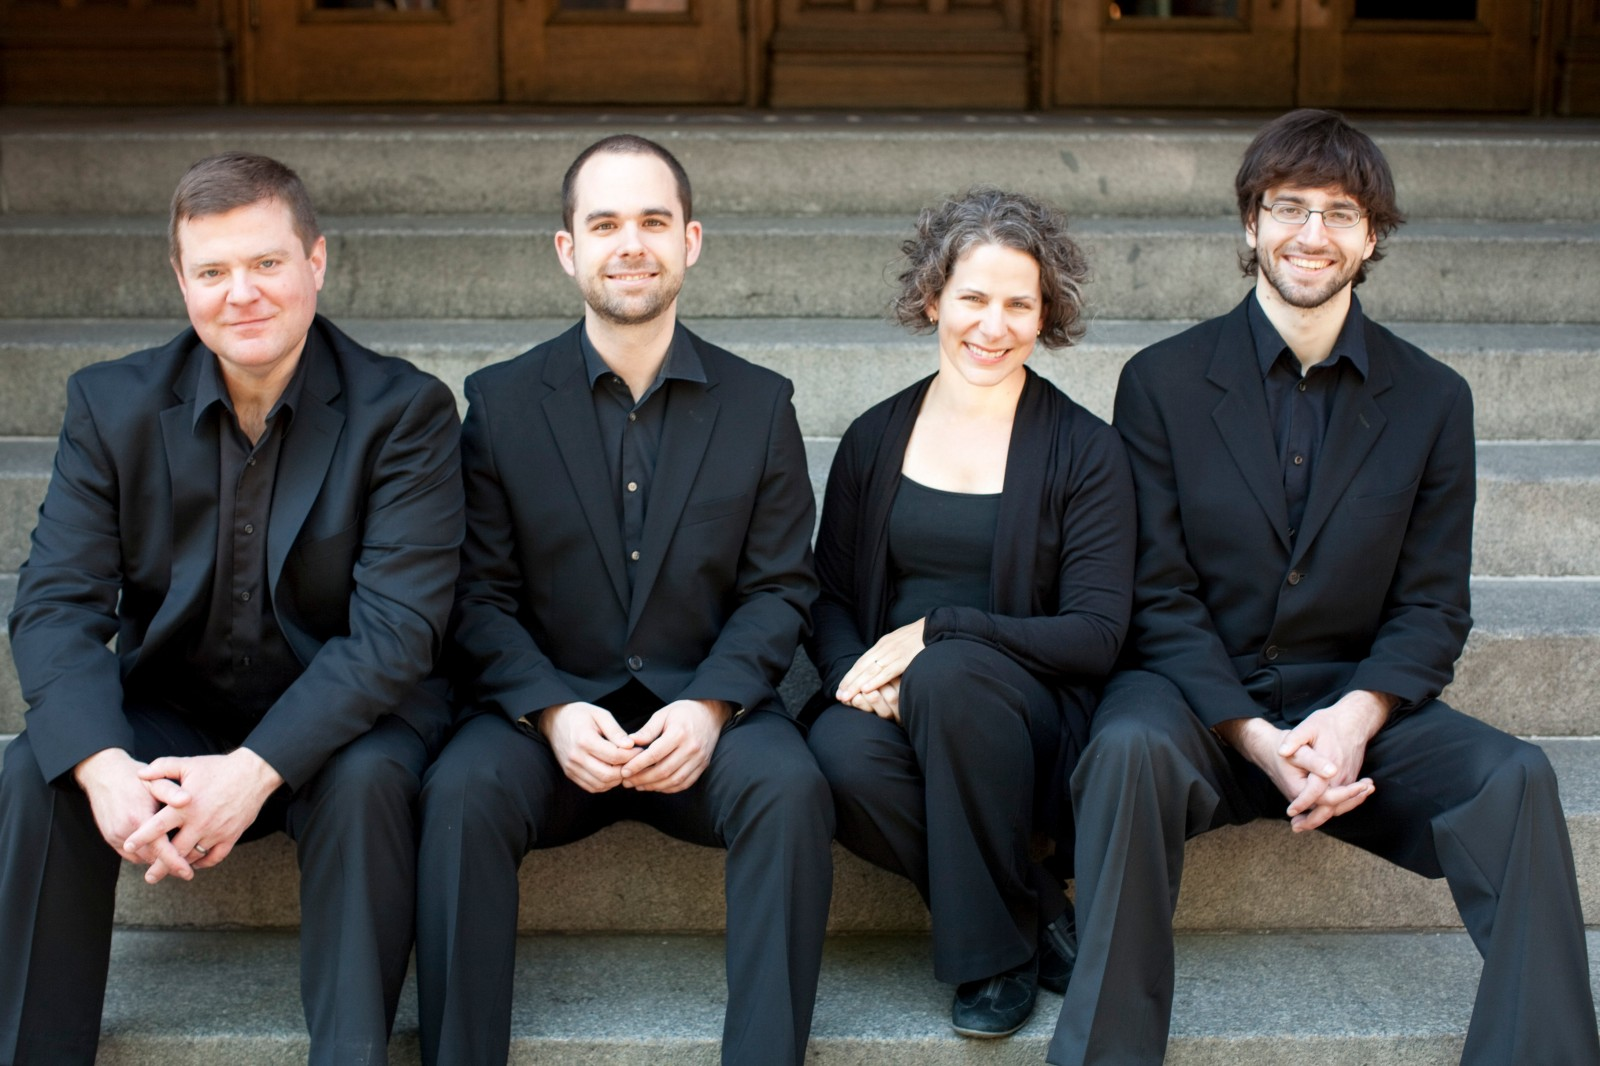 Tacoma Early Music. Founding members Jim Brown, Josh Haberman, Anne Lyman and Thomas Thompson. Photo by Danielle Barnum.